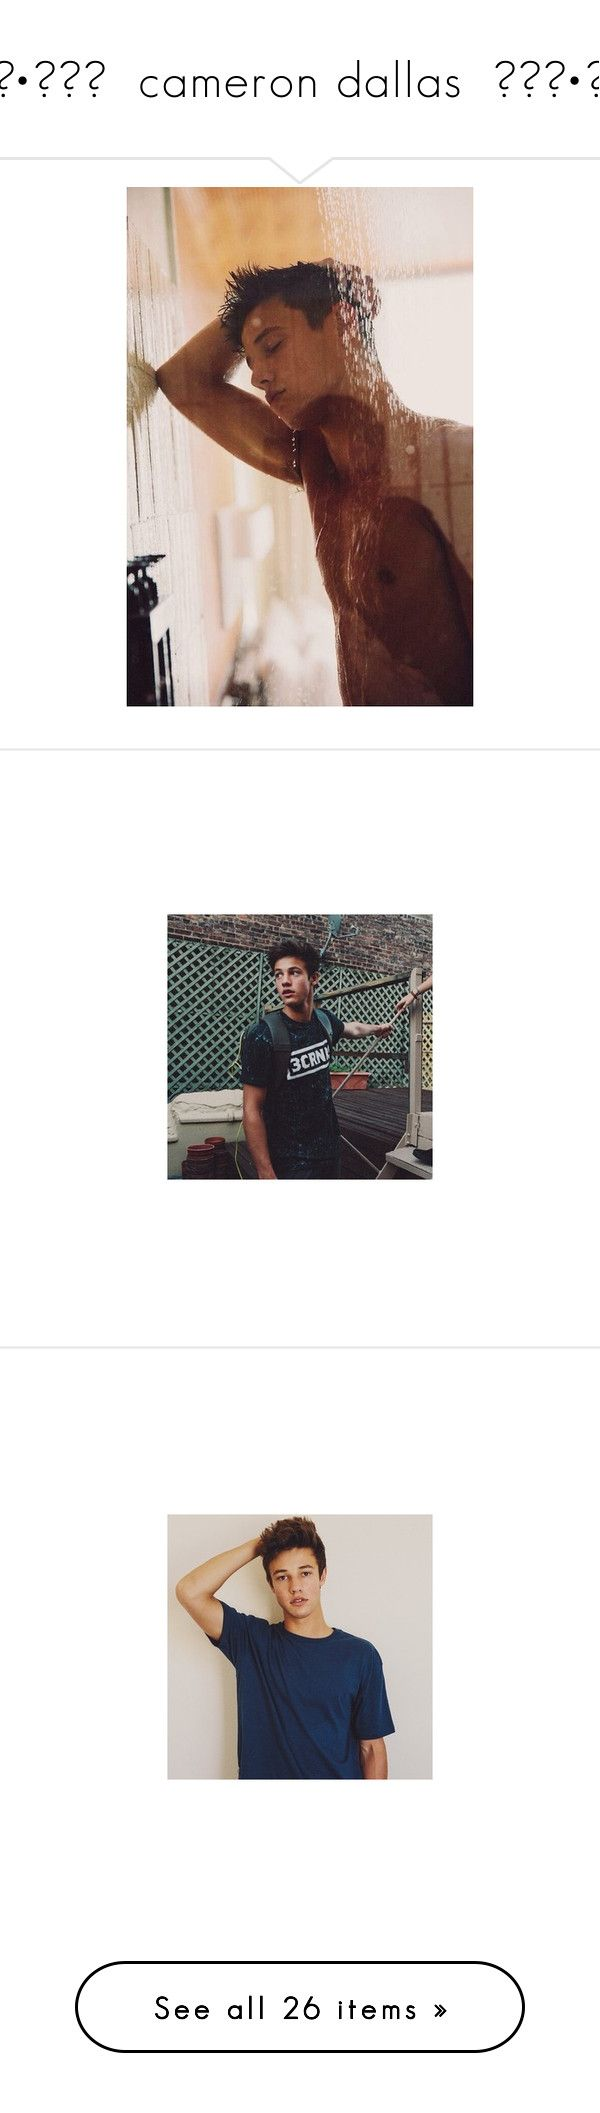 """◦•●◉✿ cameron dallas ✿◉●•◦"" by c-osmickids ❤ liked on Polyvore featuring cameron dallas, cameron, magcon, pictures, boys, guys, youtubers and magcon boys"